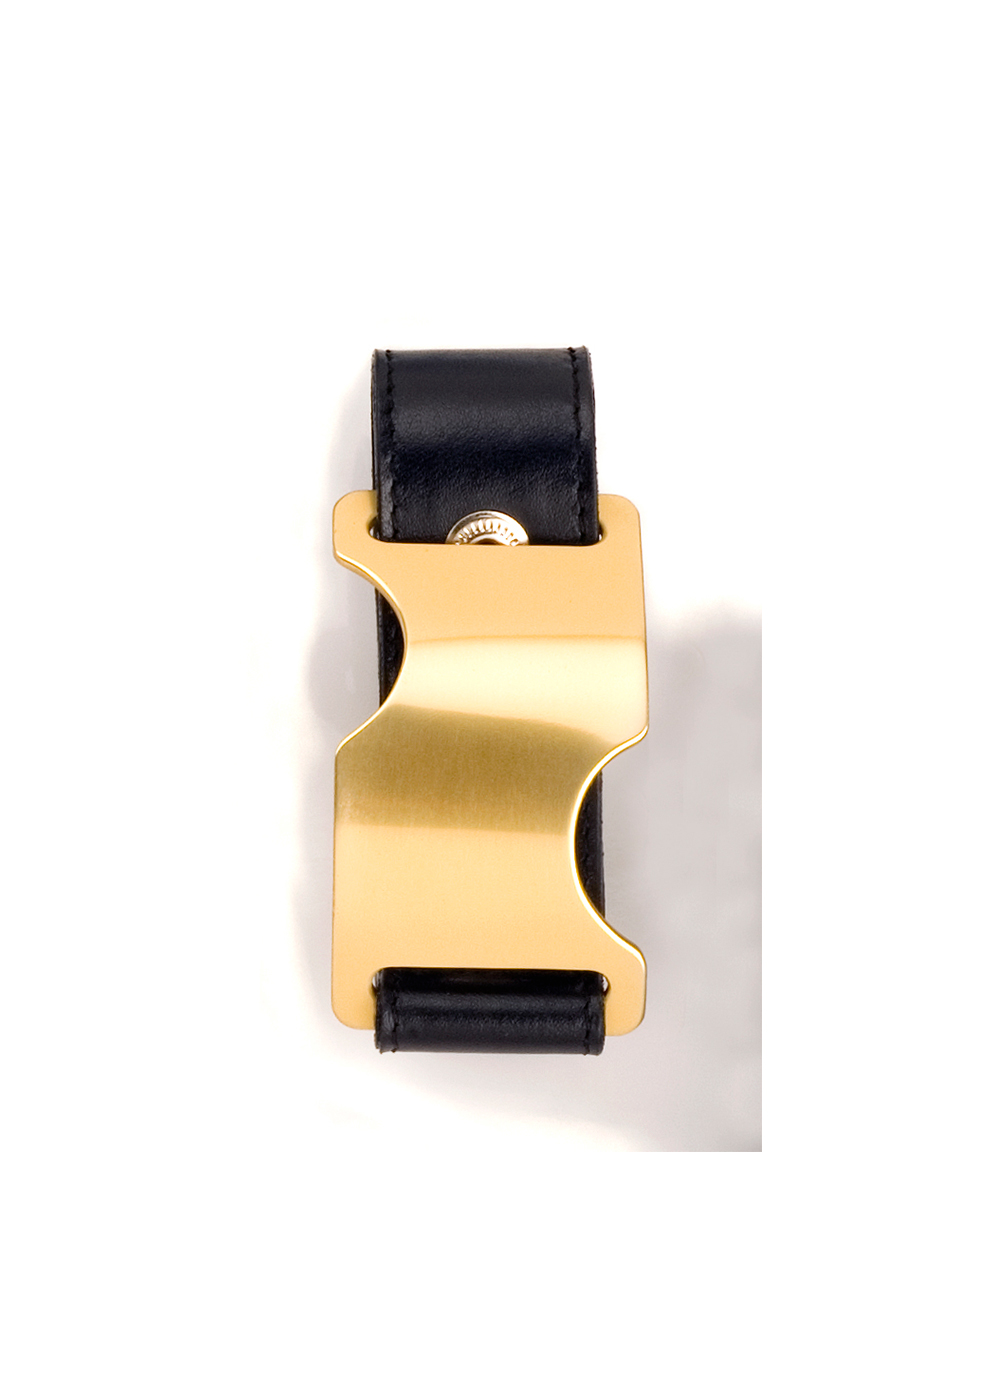 Wave Wrist Buckle, gold